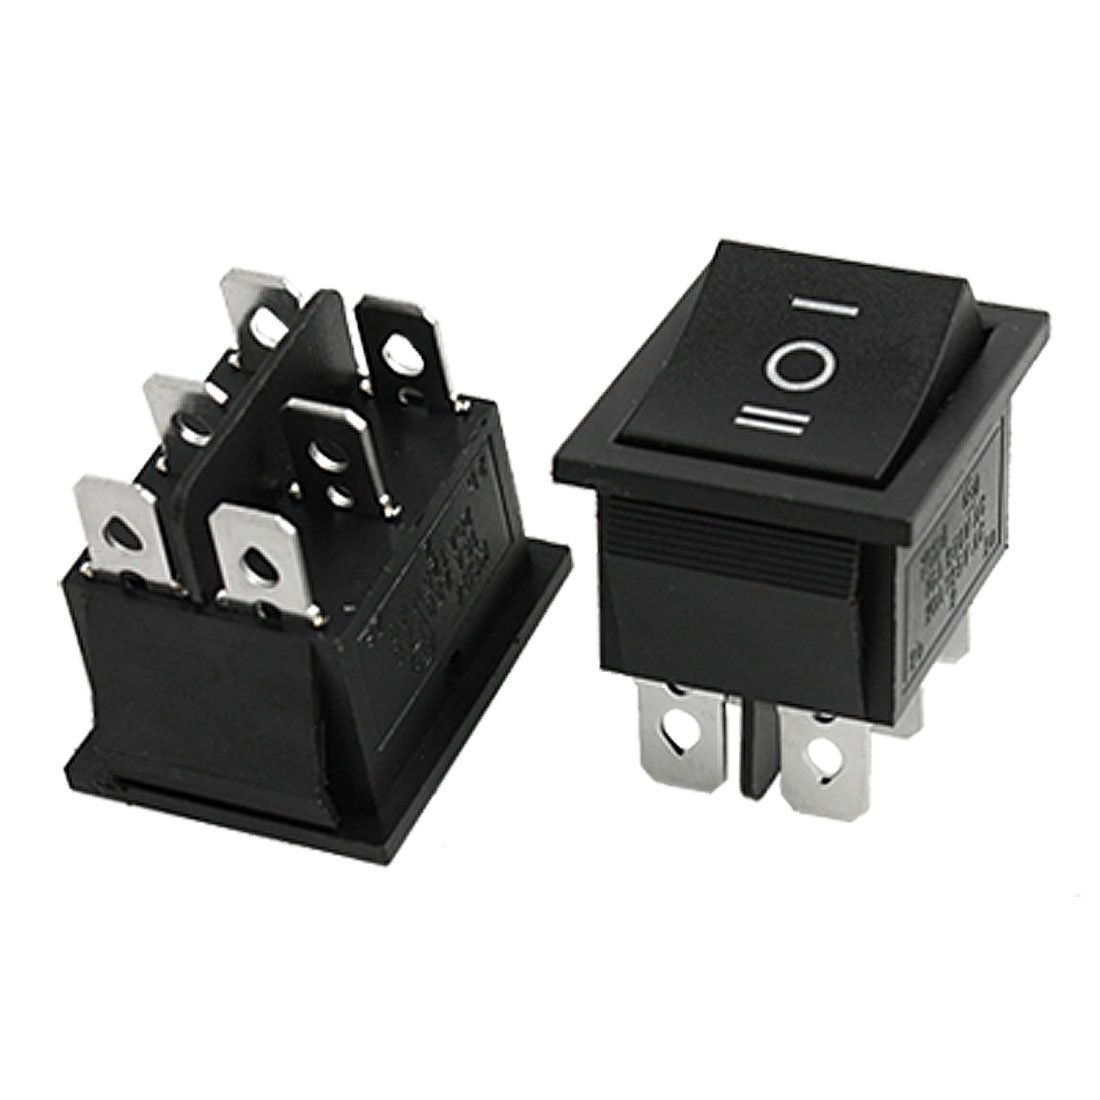 Baomain 2pcs 6 Pin DPDT ON-OFF-ON 3 Position Snap in Rocker Switch 15A/250V 20A/125V AC